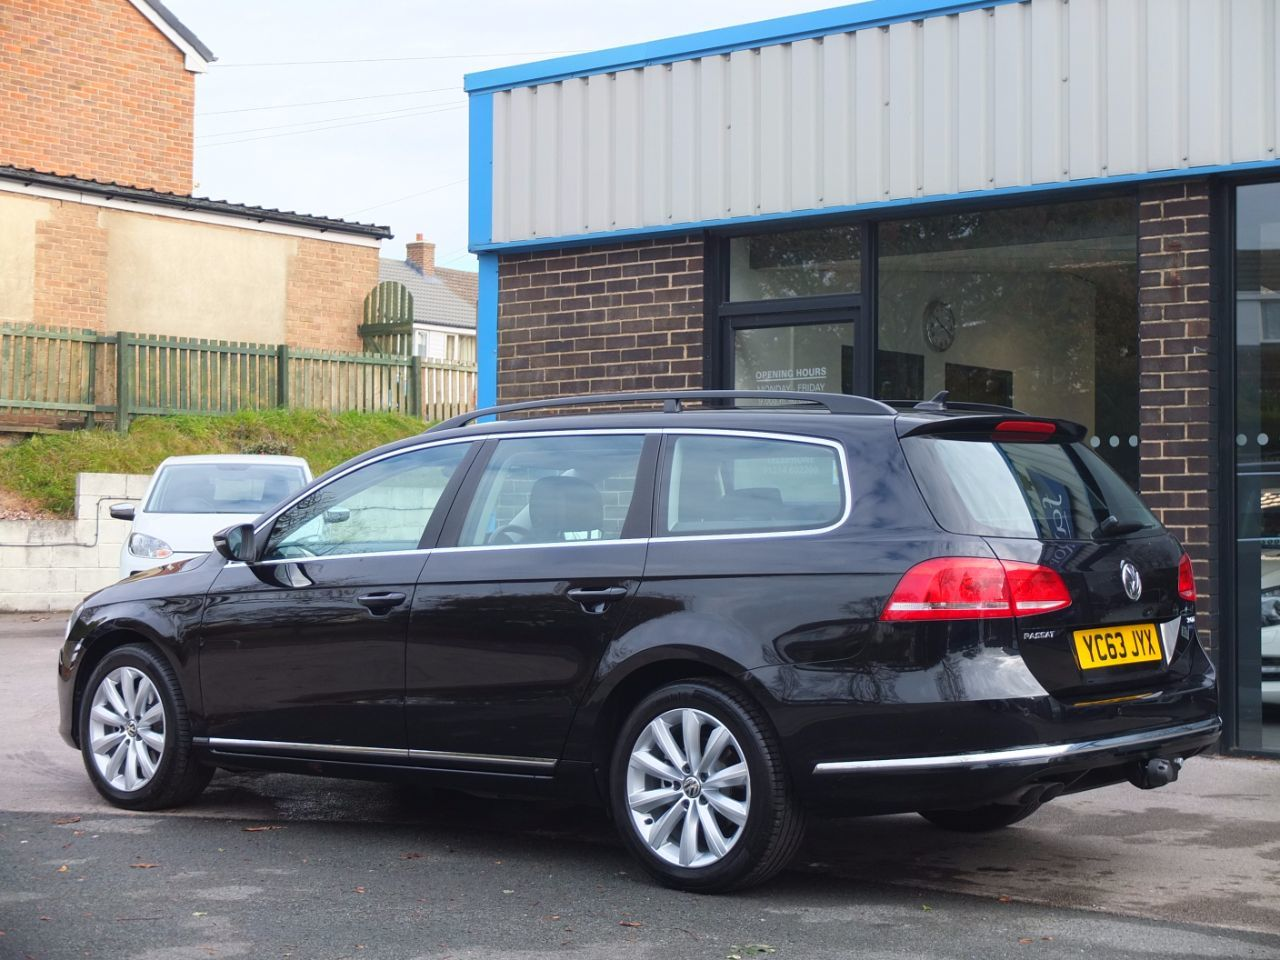 Volkswagen Passat 2.0 TDI Bluemotion Tech Estate Highline 140ps Estate Diesel Deep Black Pearl